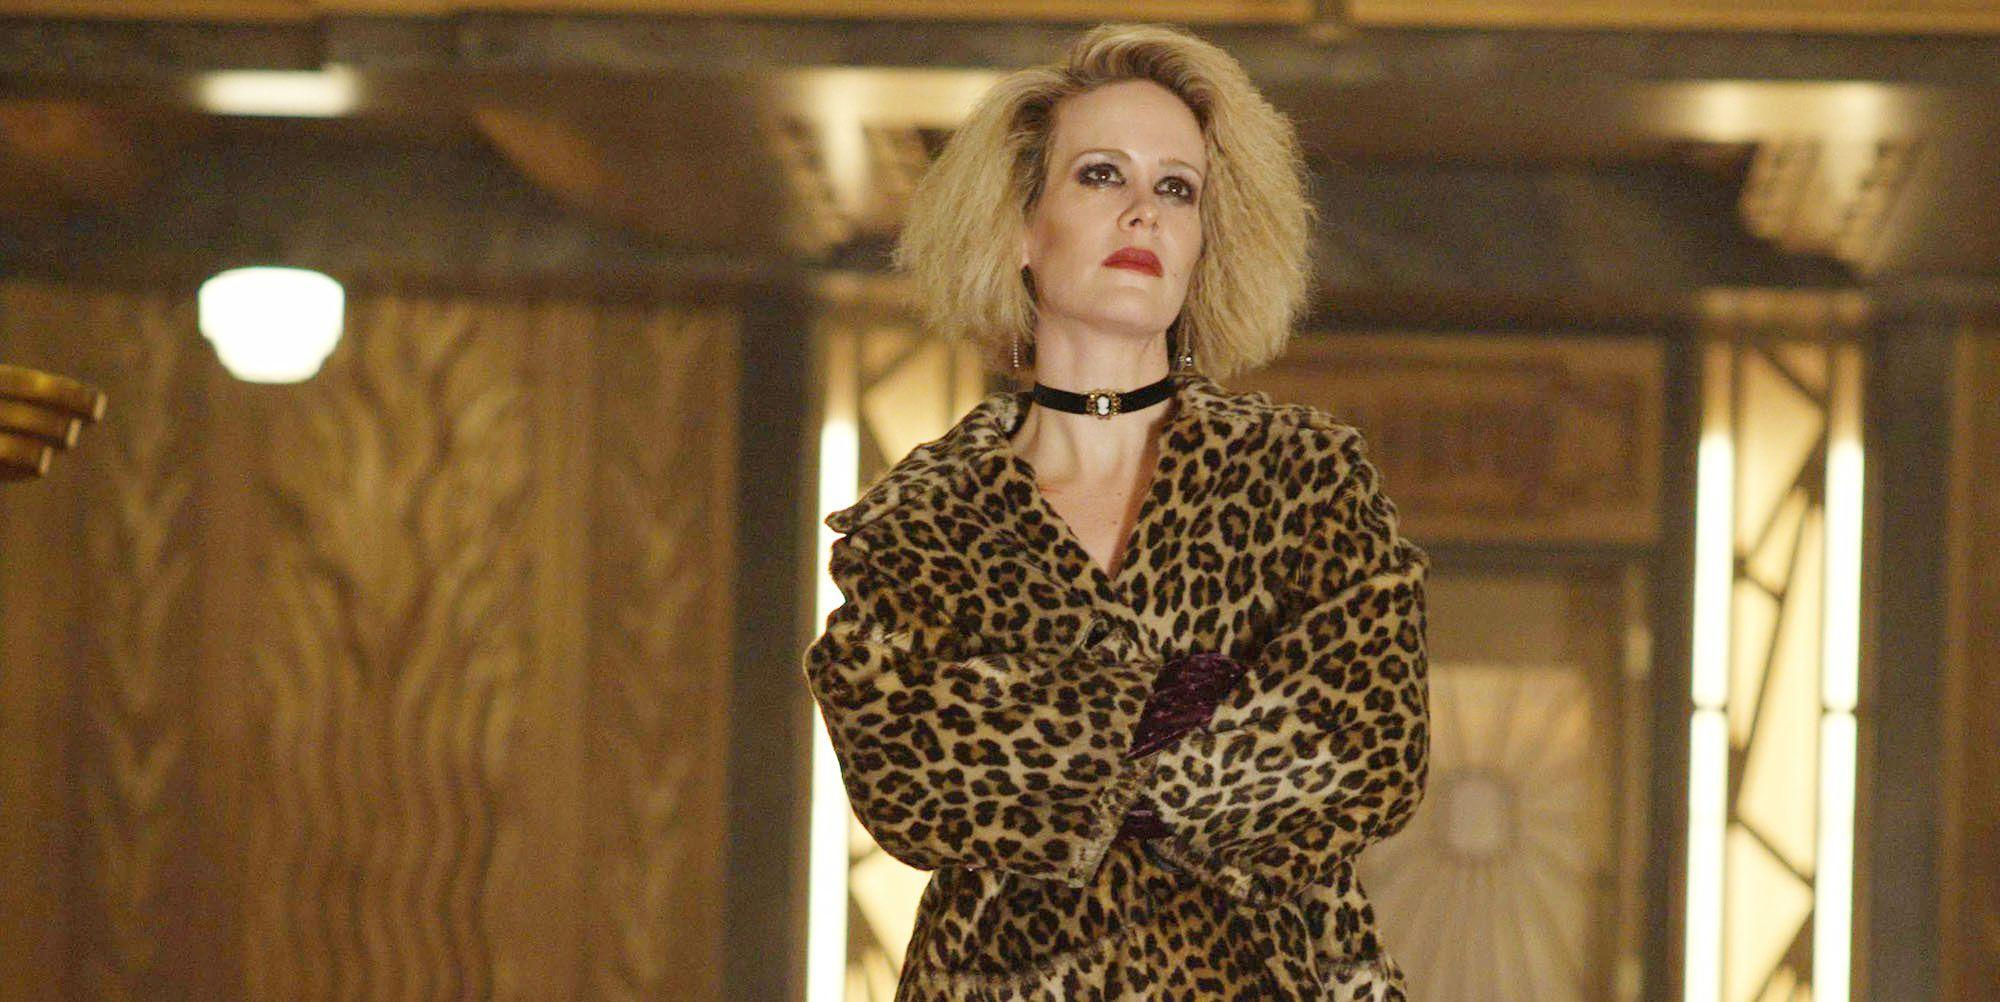 AHS Spinoff American Horror Stories: Sarah Paulson To